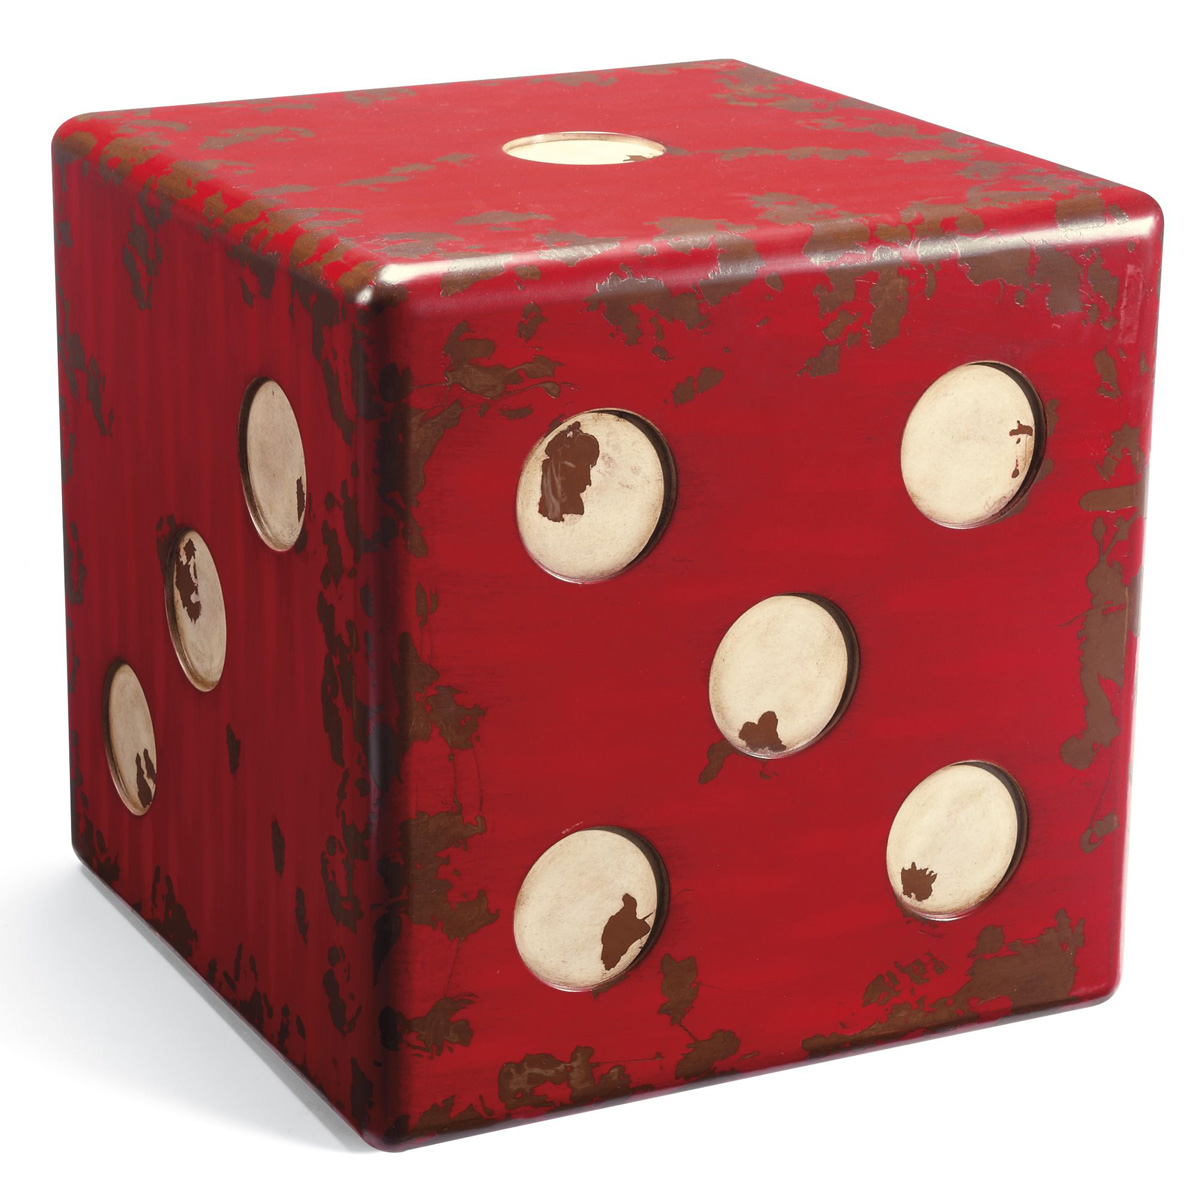 Giant Antique Dice Tables The Green Head